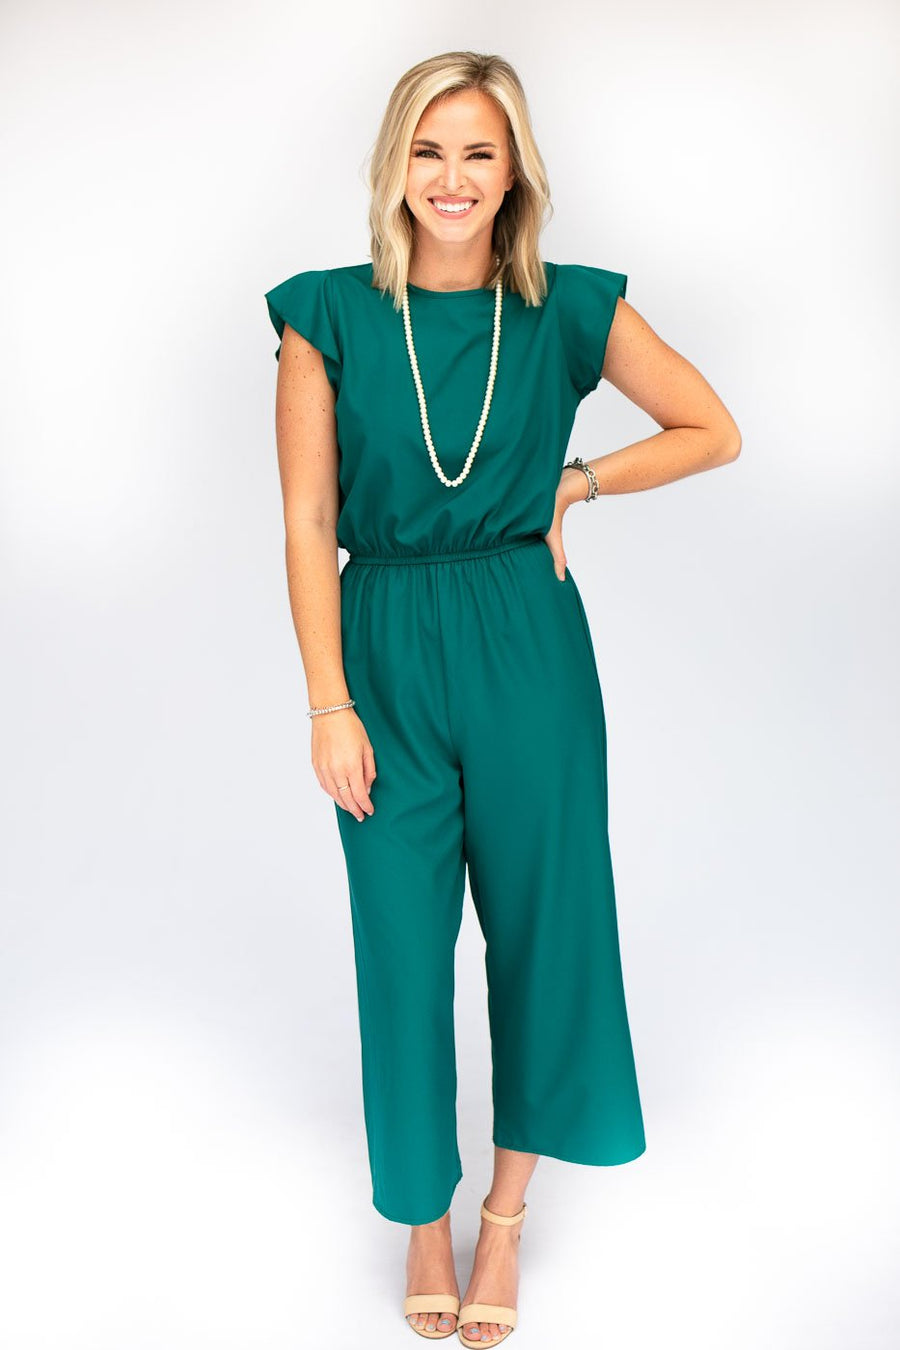 Teal Ruffle Sleeve Jumpsuit